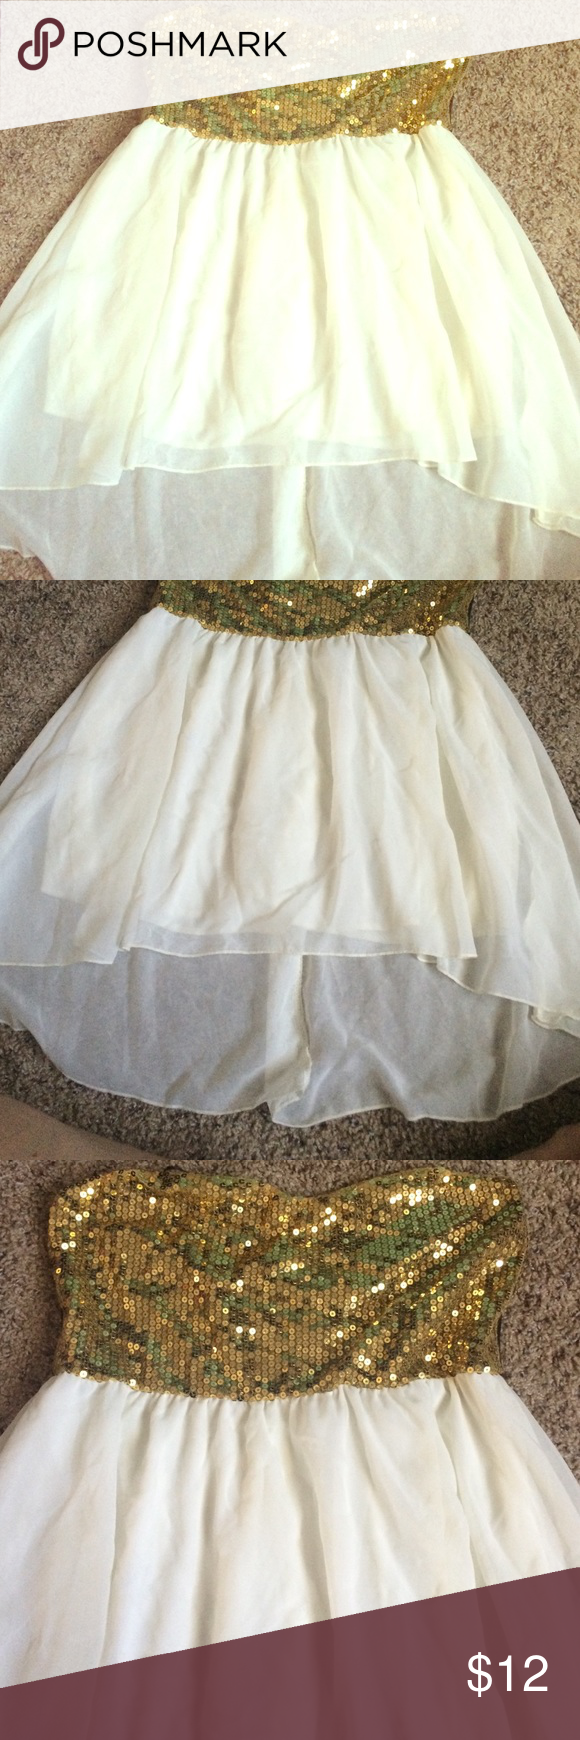 Gold sequin ivory flowy tube top Gold sequin ivory flowy tube top, great to dress up for the holidays! Deb Tops Blouses